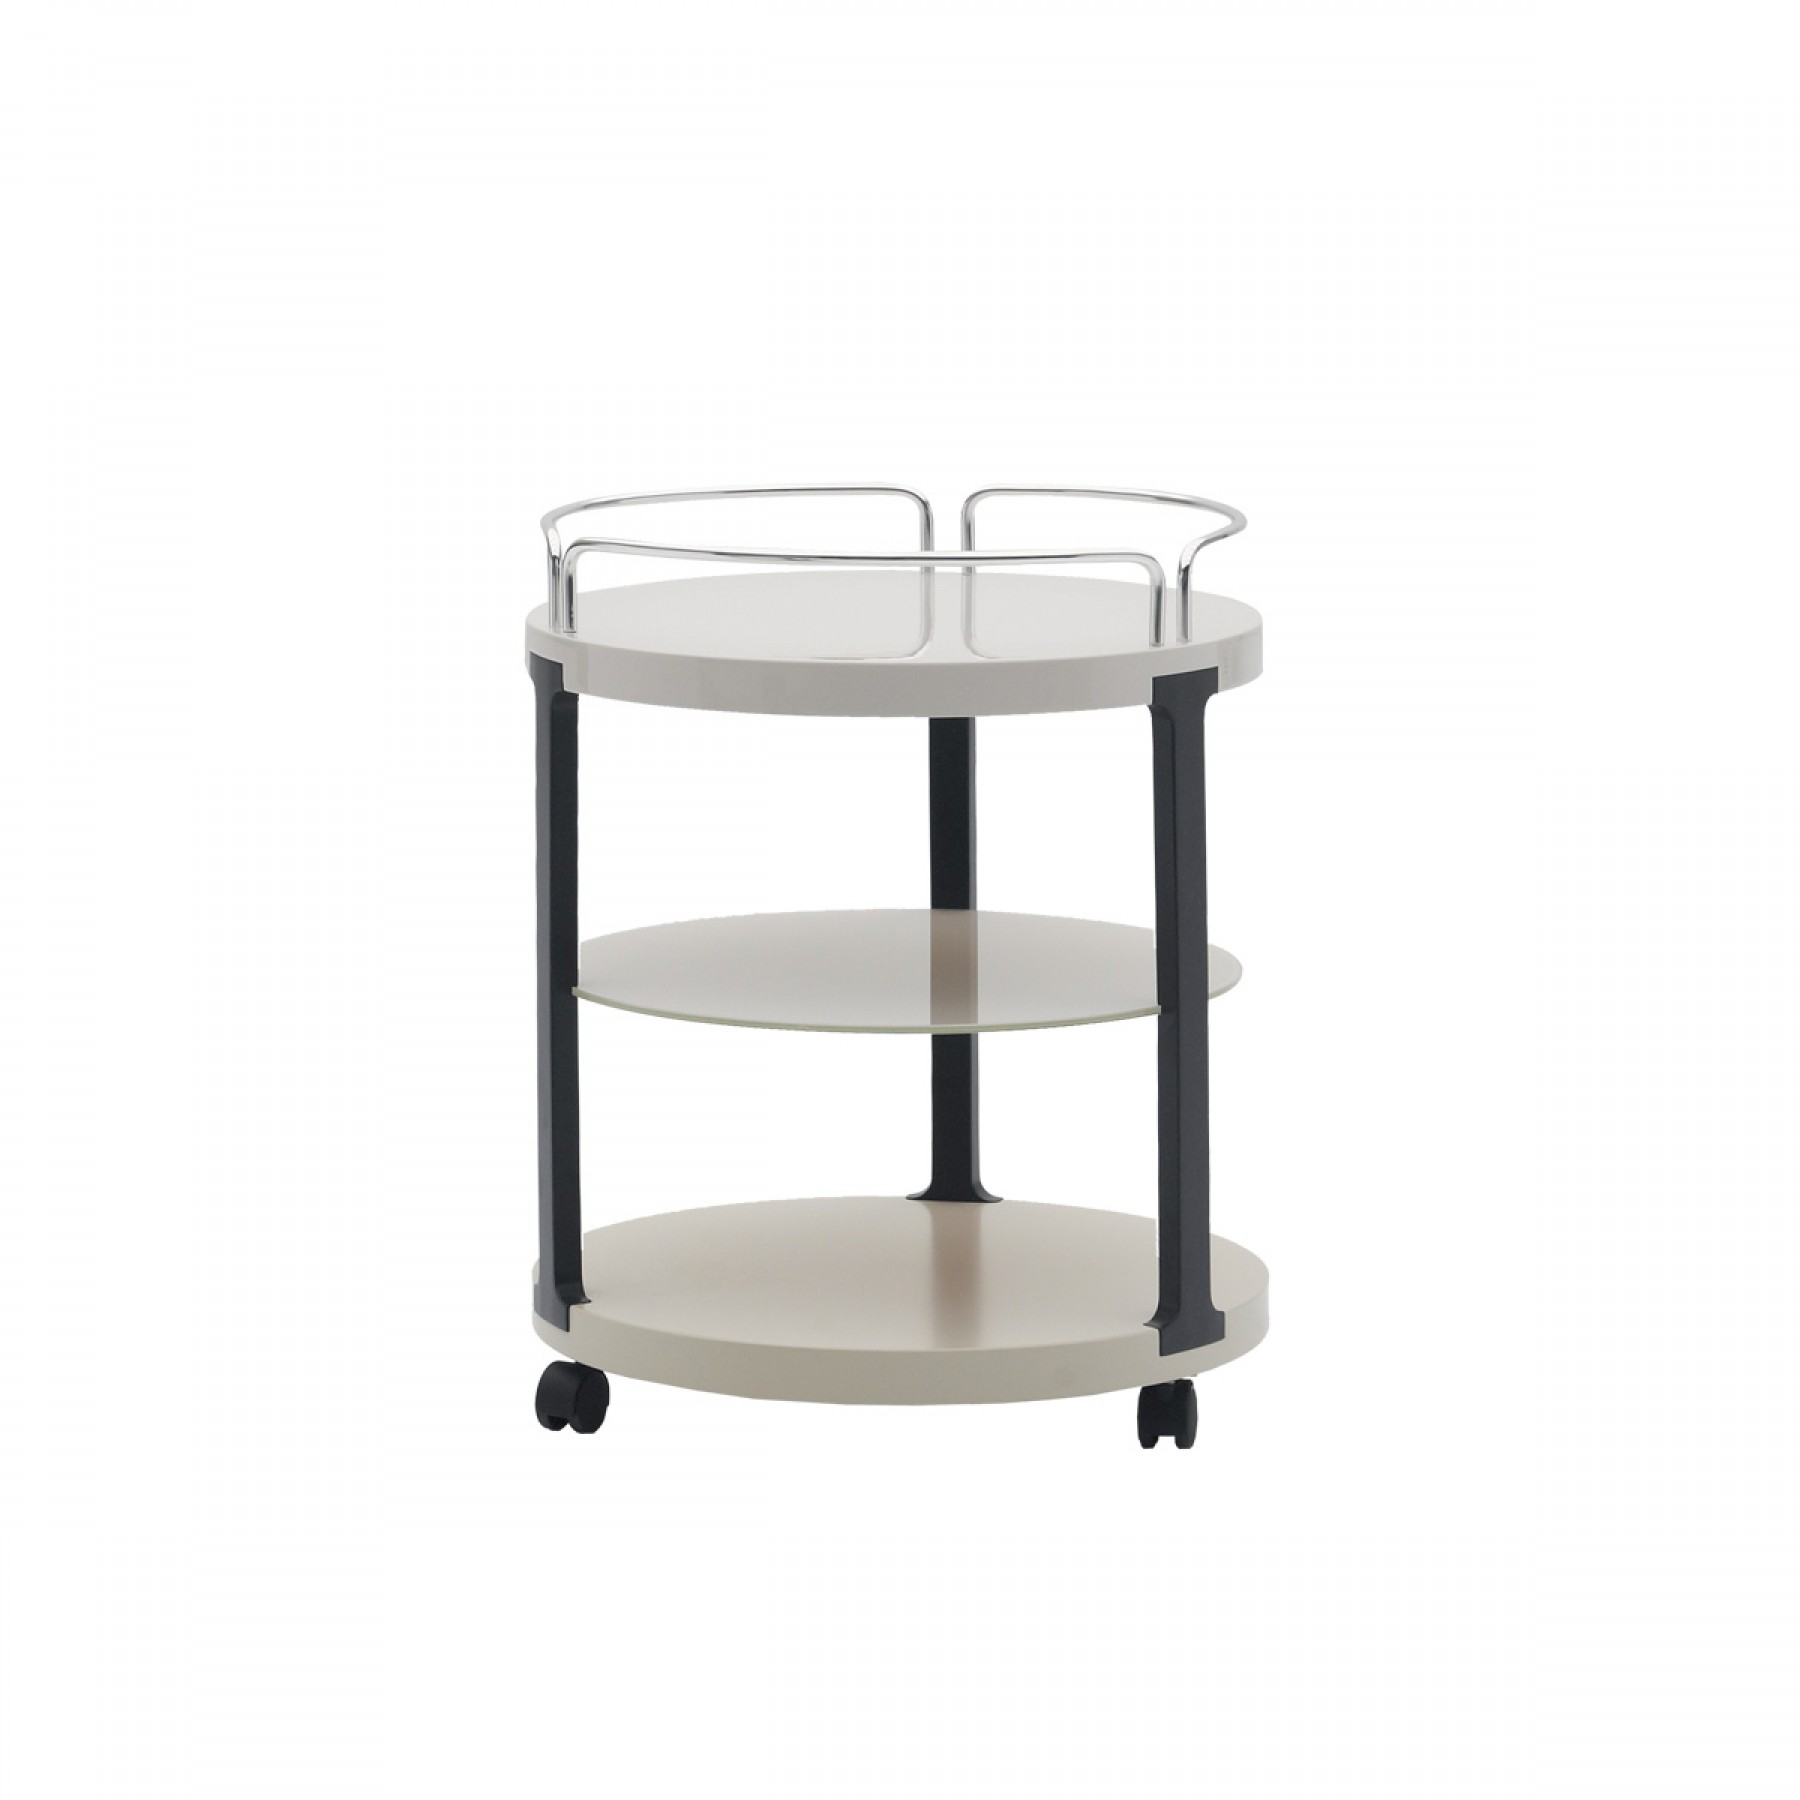 Vinello Drinks Trolley Beyond Furniture